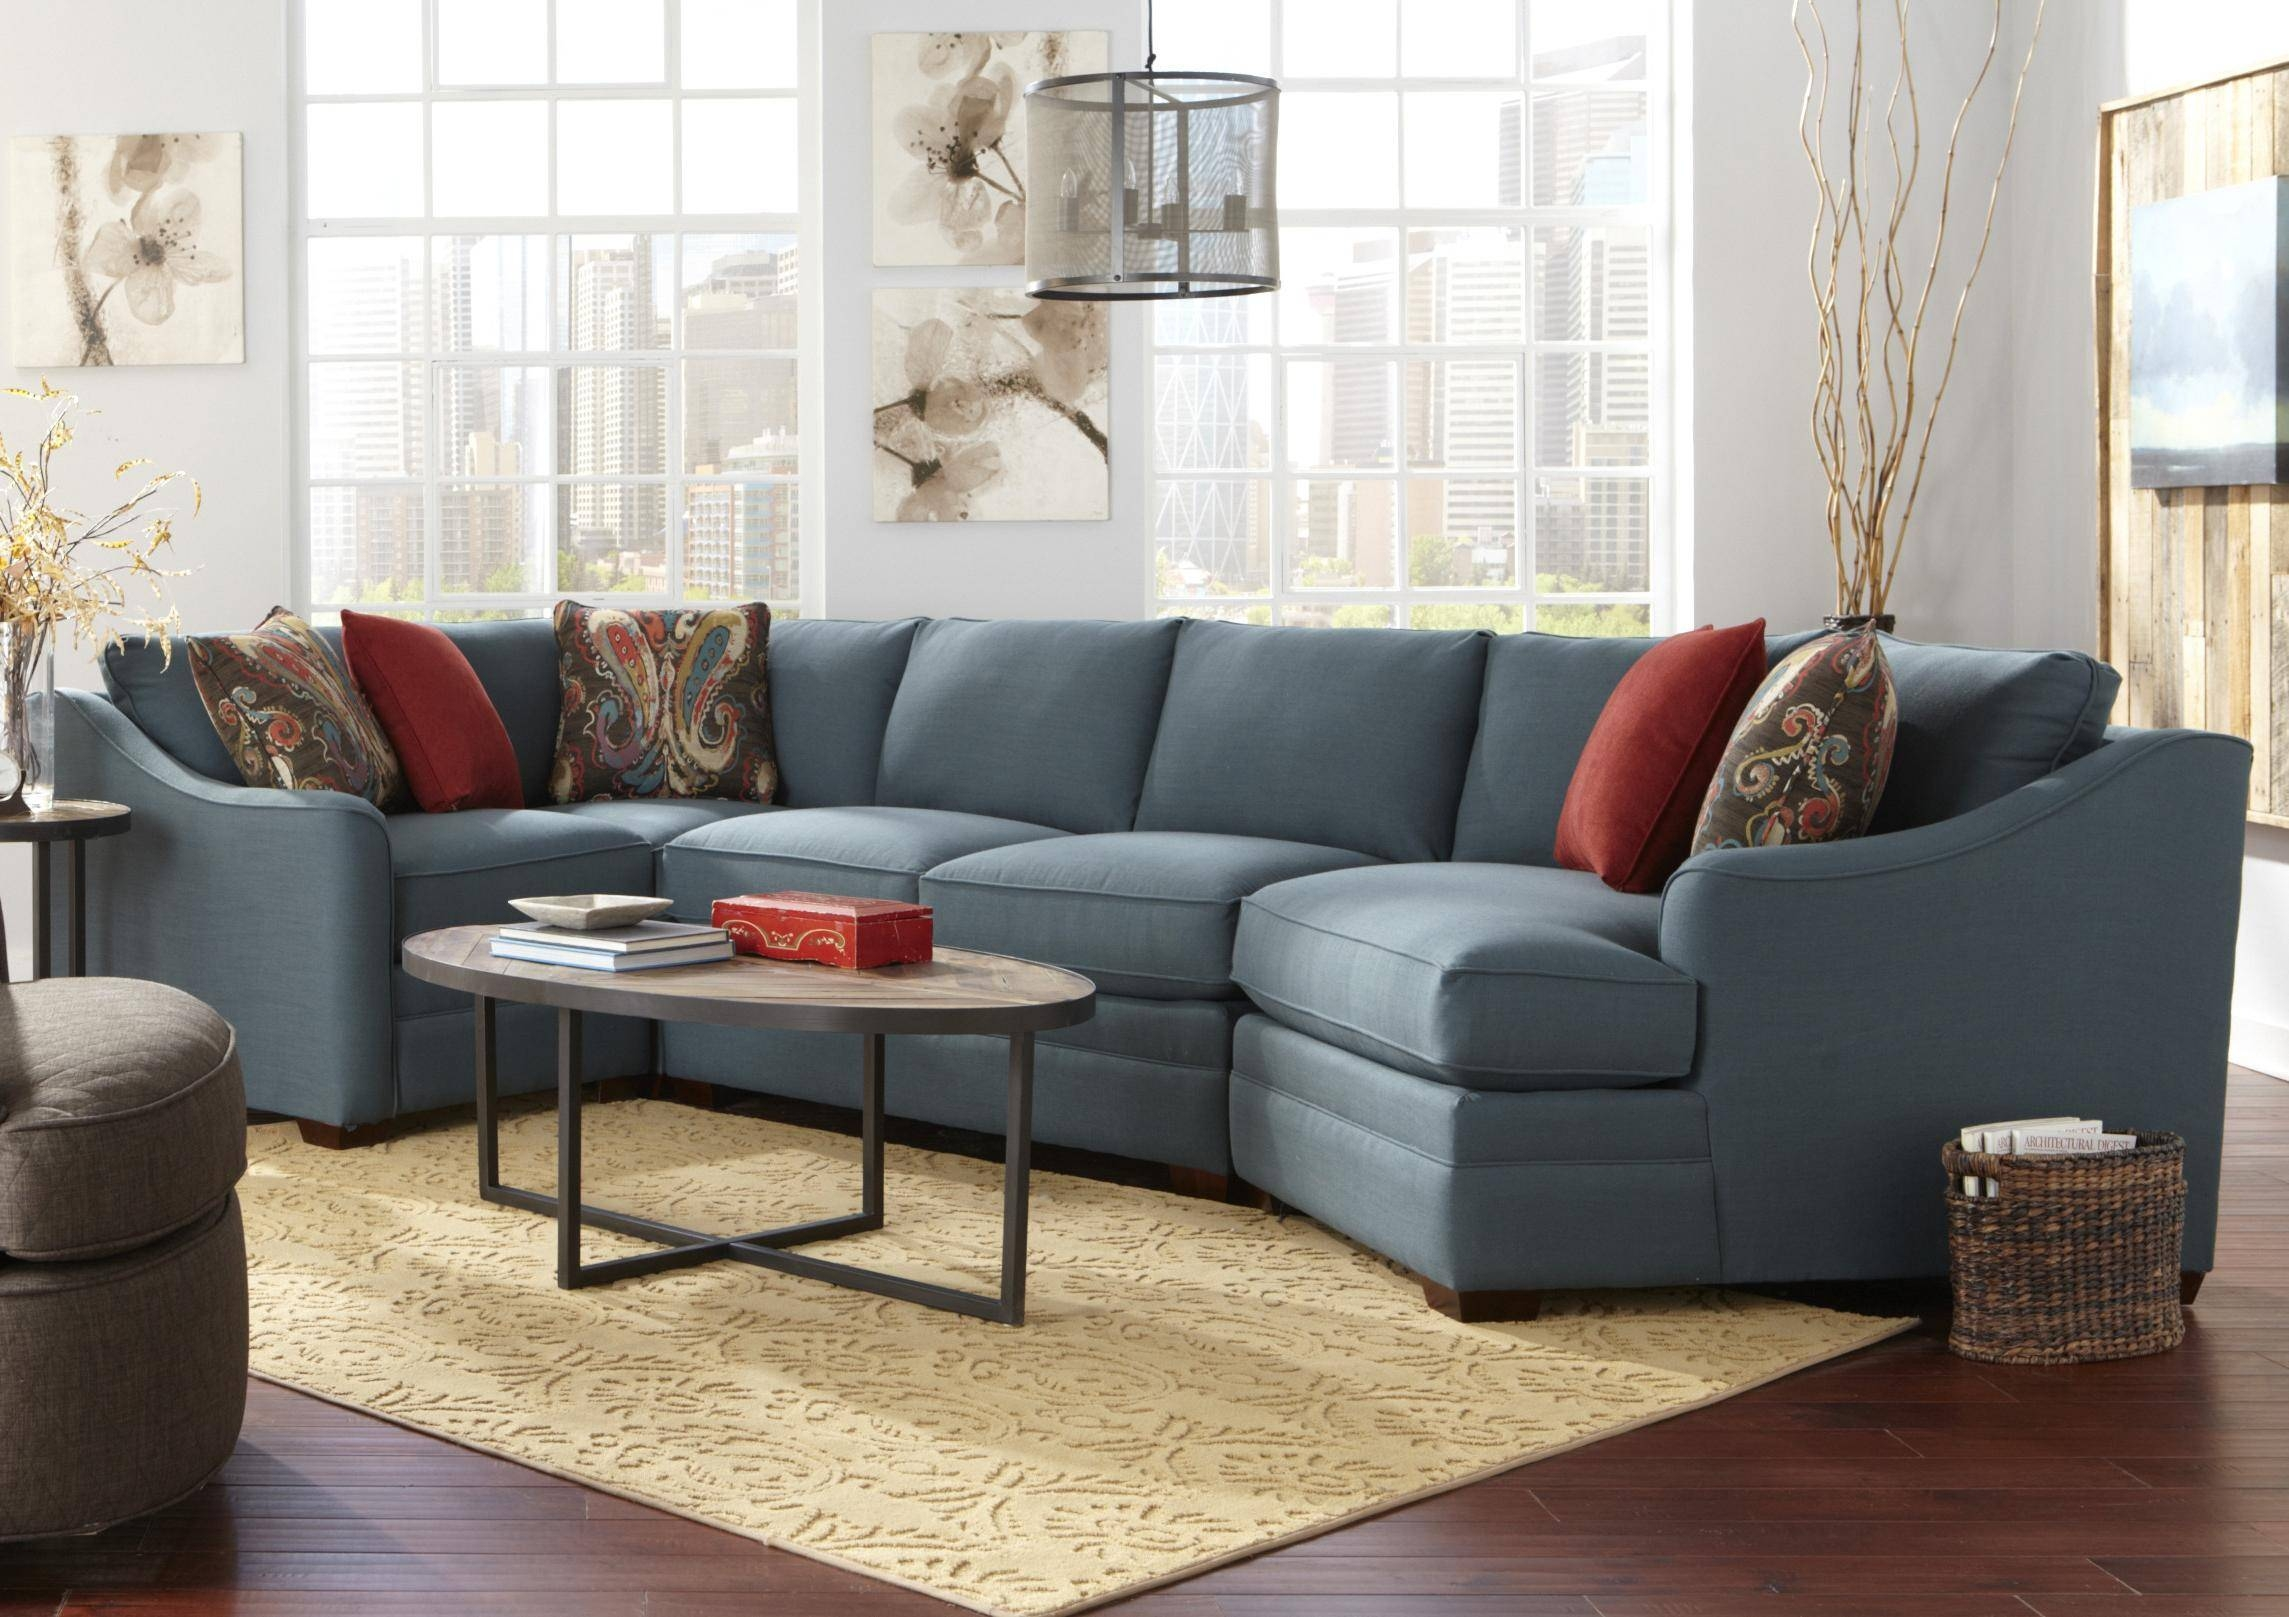 Sectional Sofa With Cuddler | Sofas Decoration Inside Cuddler Sectional Sofa (View 22 of 30)